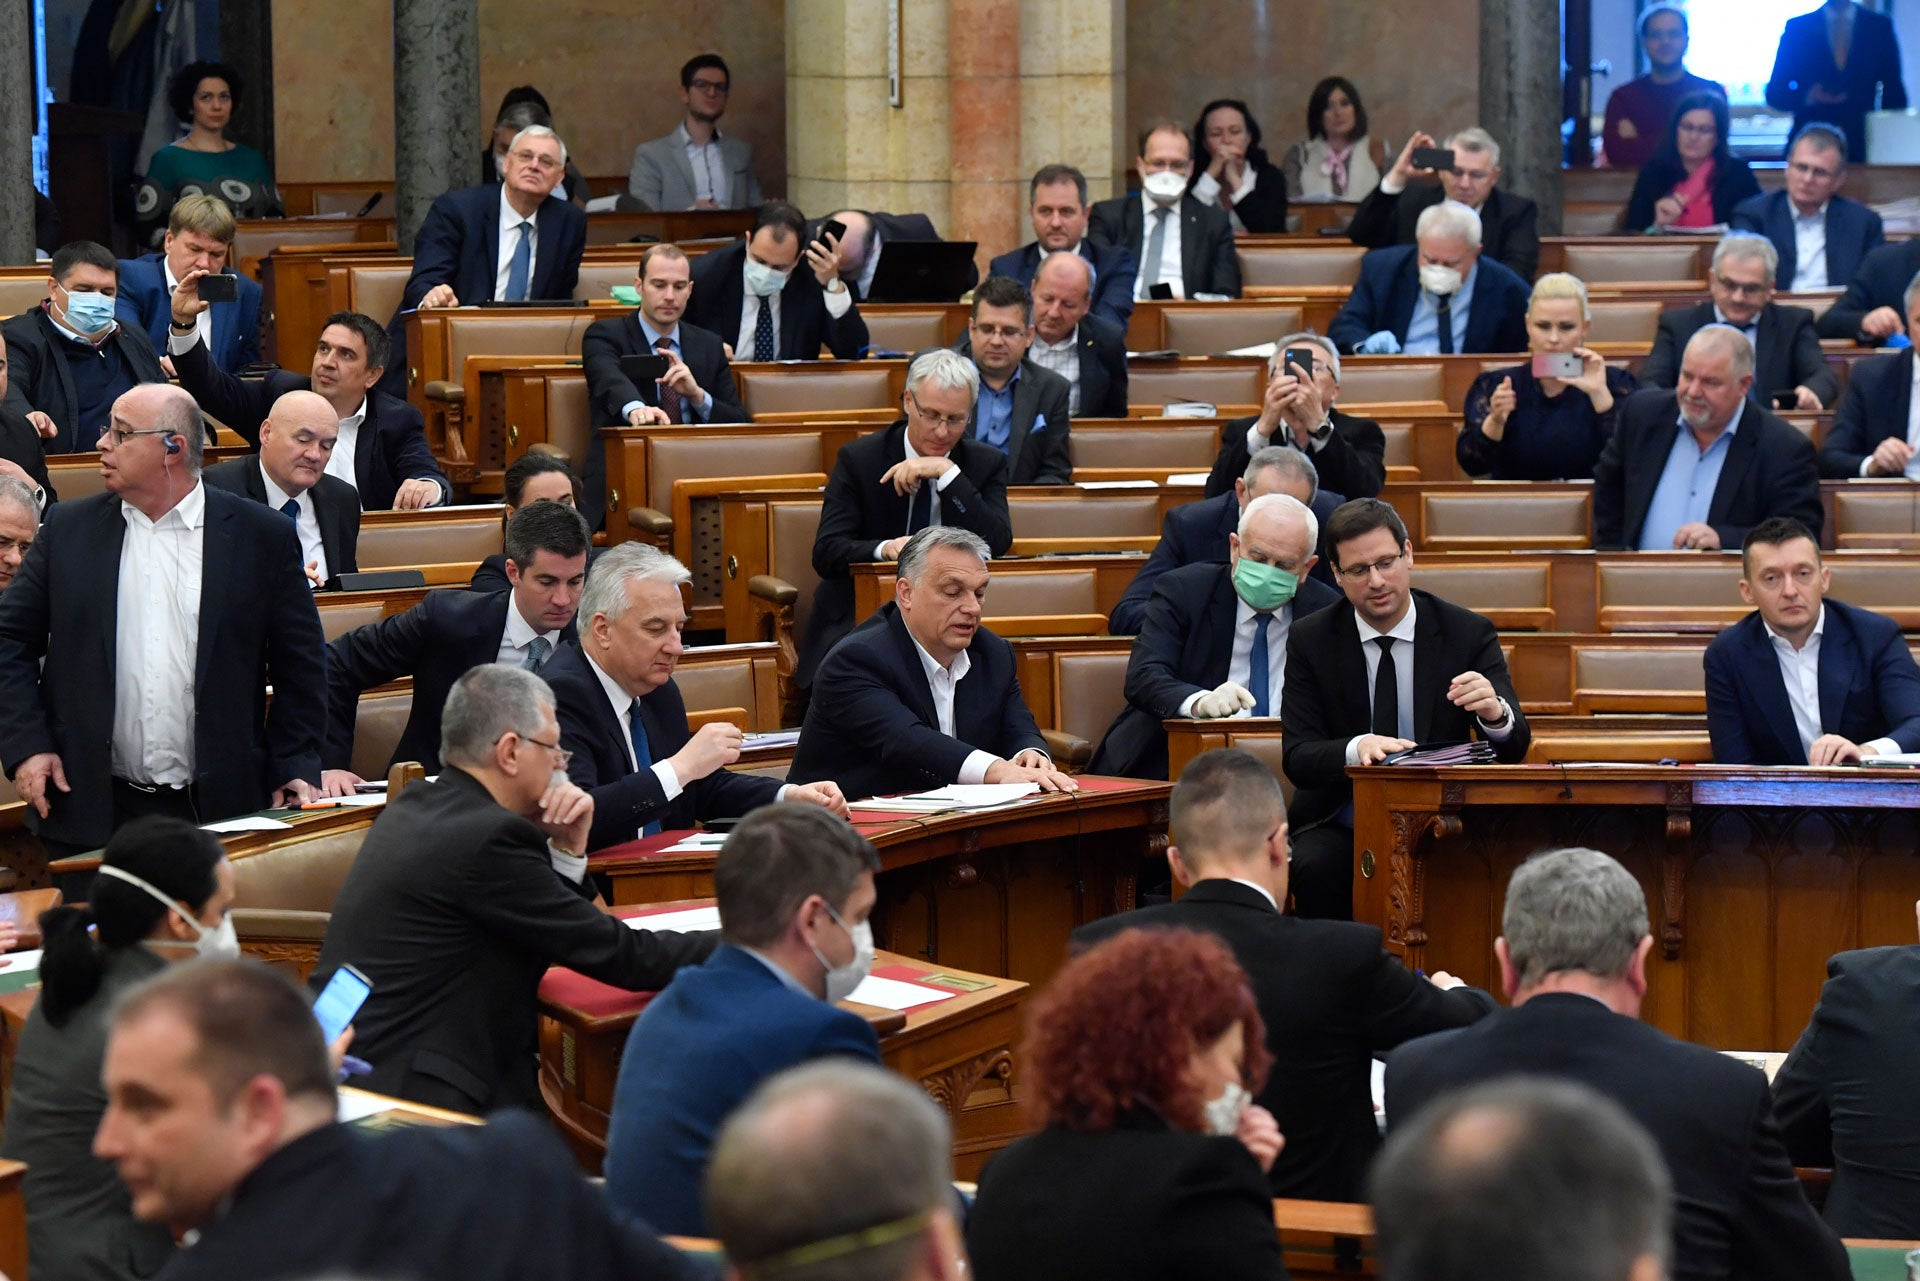 Hungarian Prime Minister Viktor Orban, center, his deputy Zsolt Semjen and other government members and MPs of the governing Fidesz party vote on a draft law concerning extraordinary measures during the plenary session of Parliament in Budapest, Hungary,